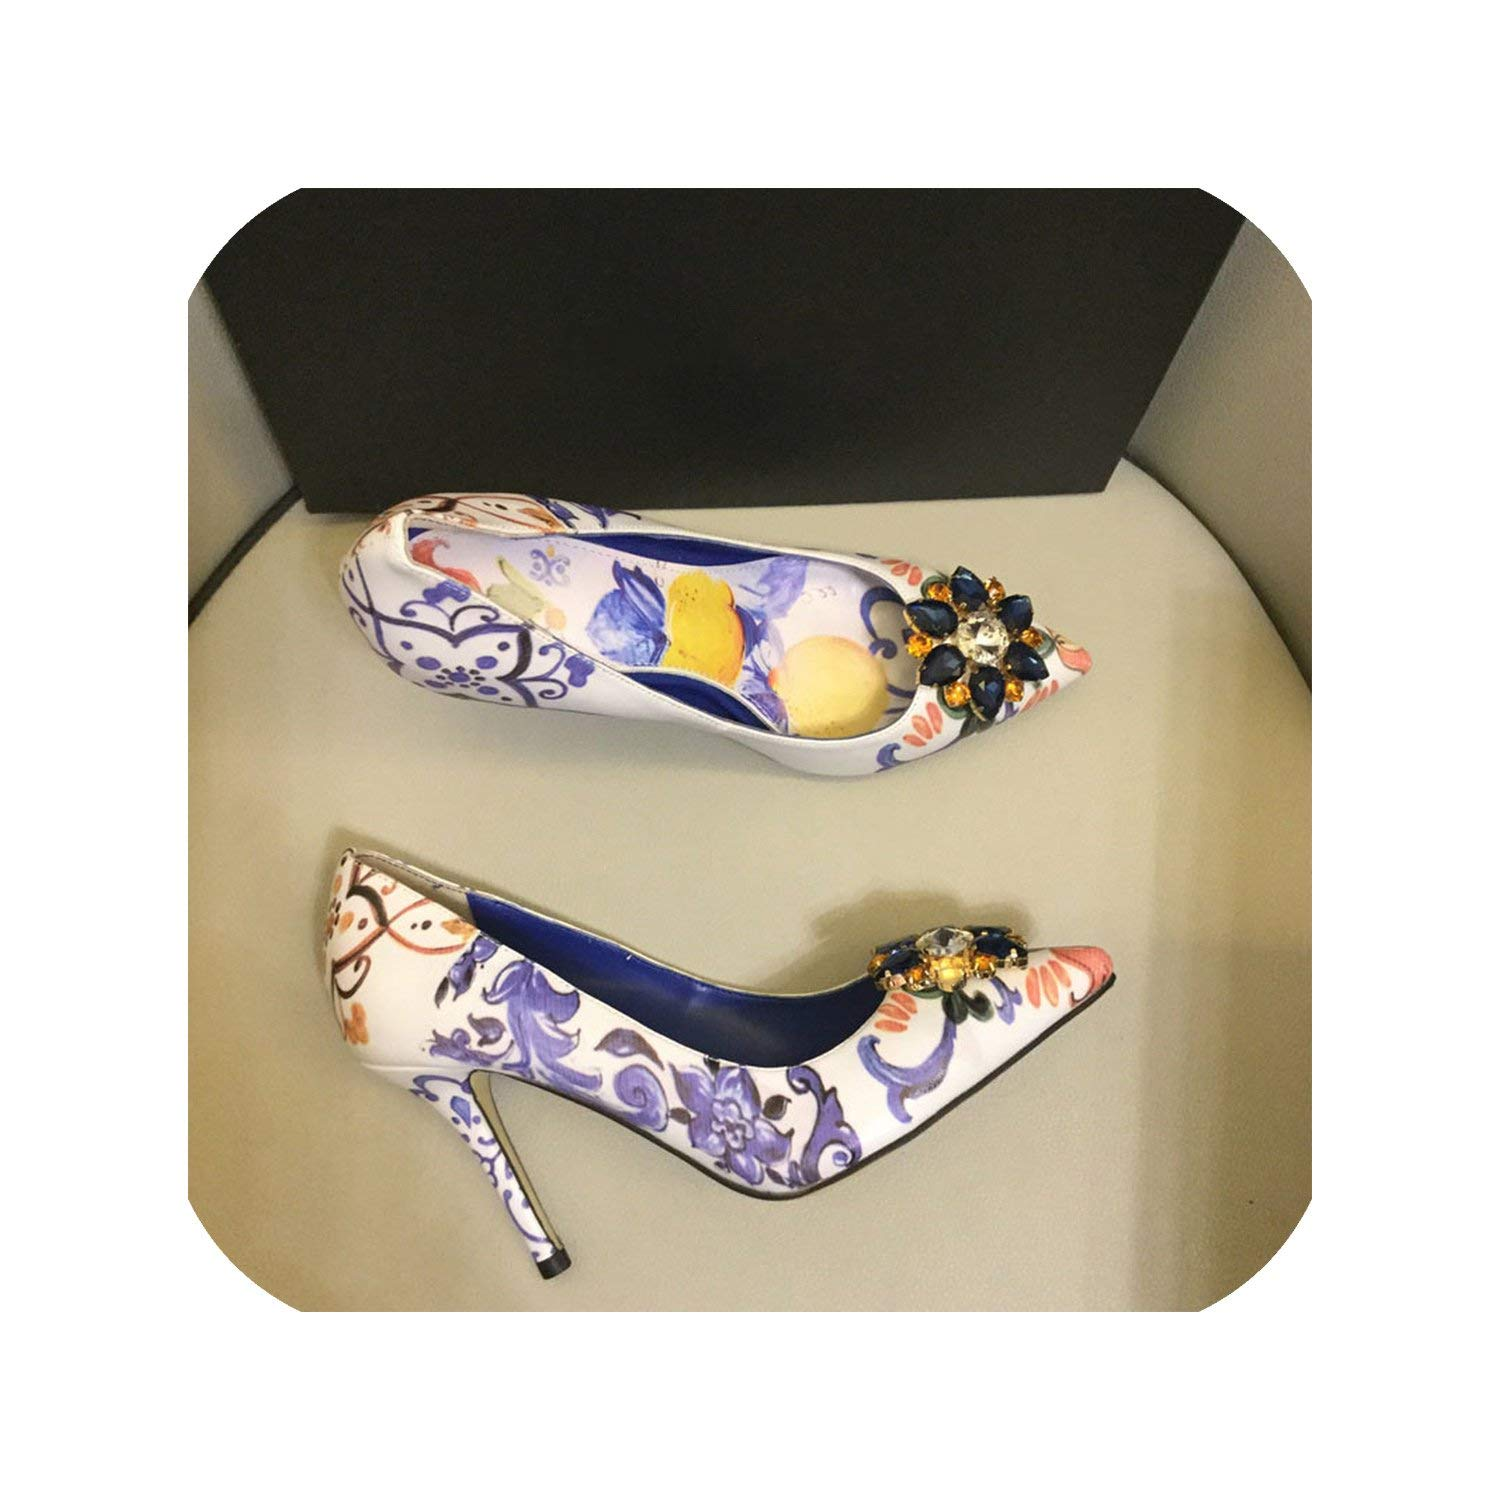 purple 10cm The Hot Rock-sandals Printed color High Heel shoes Woman Point Toe Shallow Thin Heel Bling Crystal Wedding shoes Women